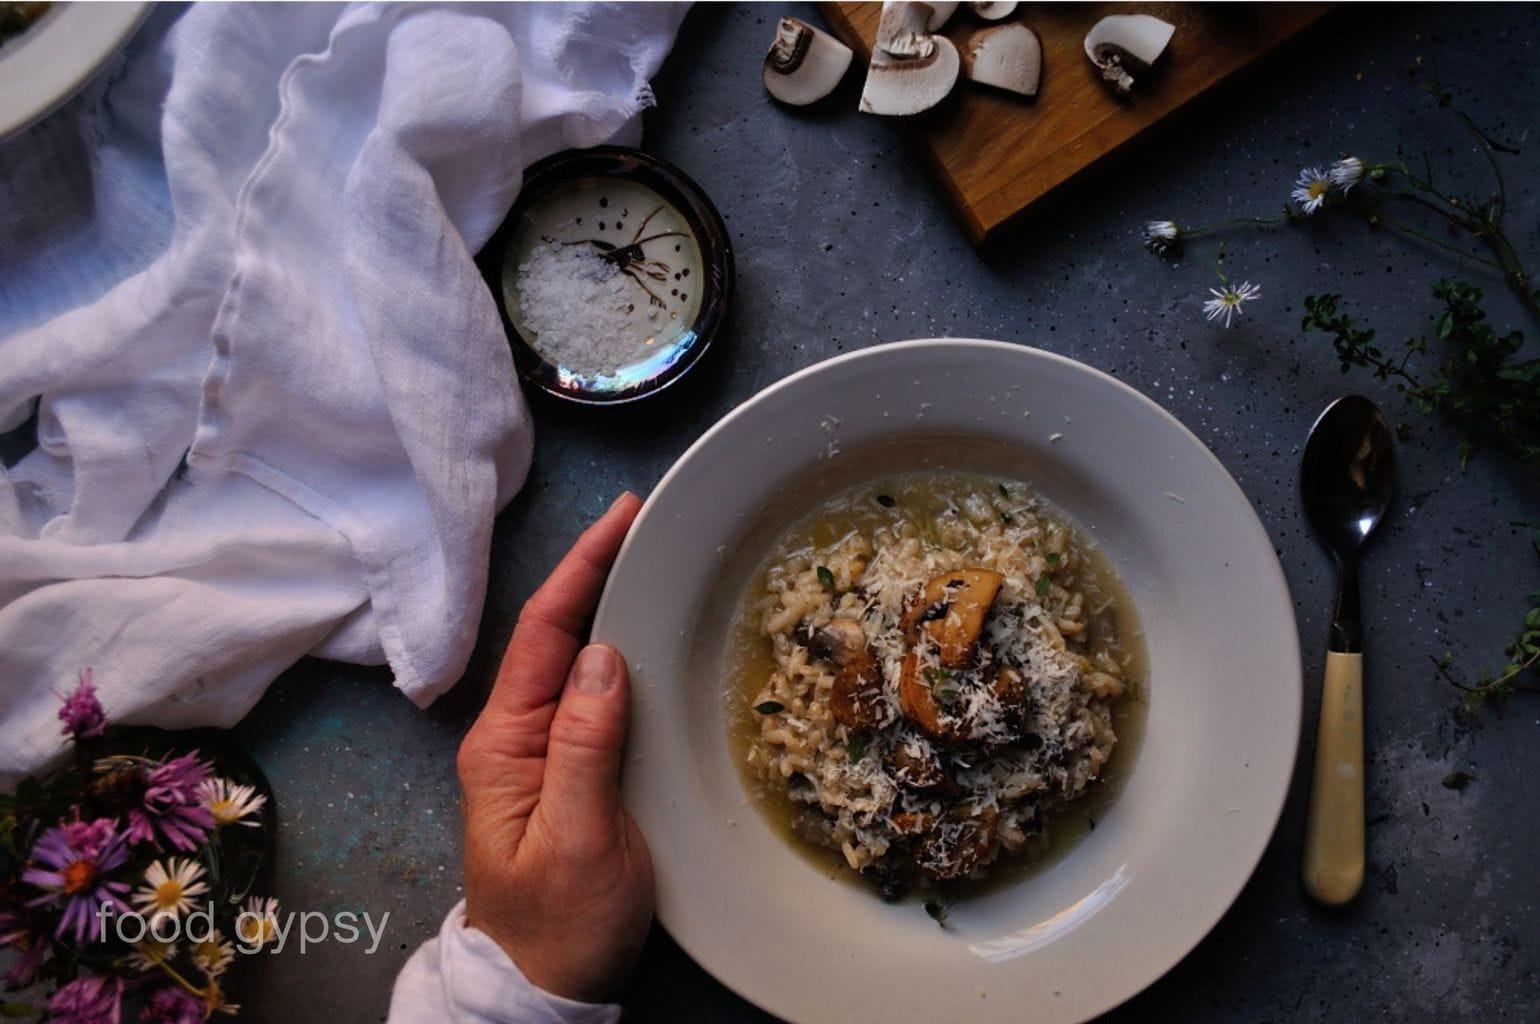 Mushroom Risotto Recipe, Food Gypsy-0920